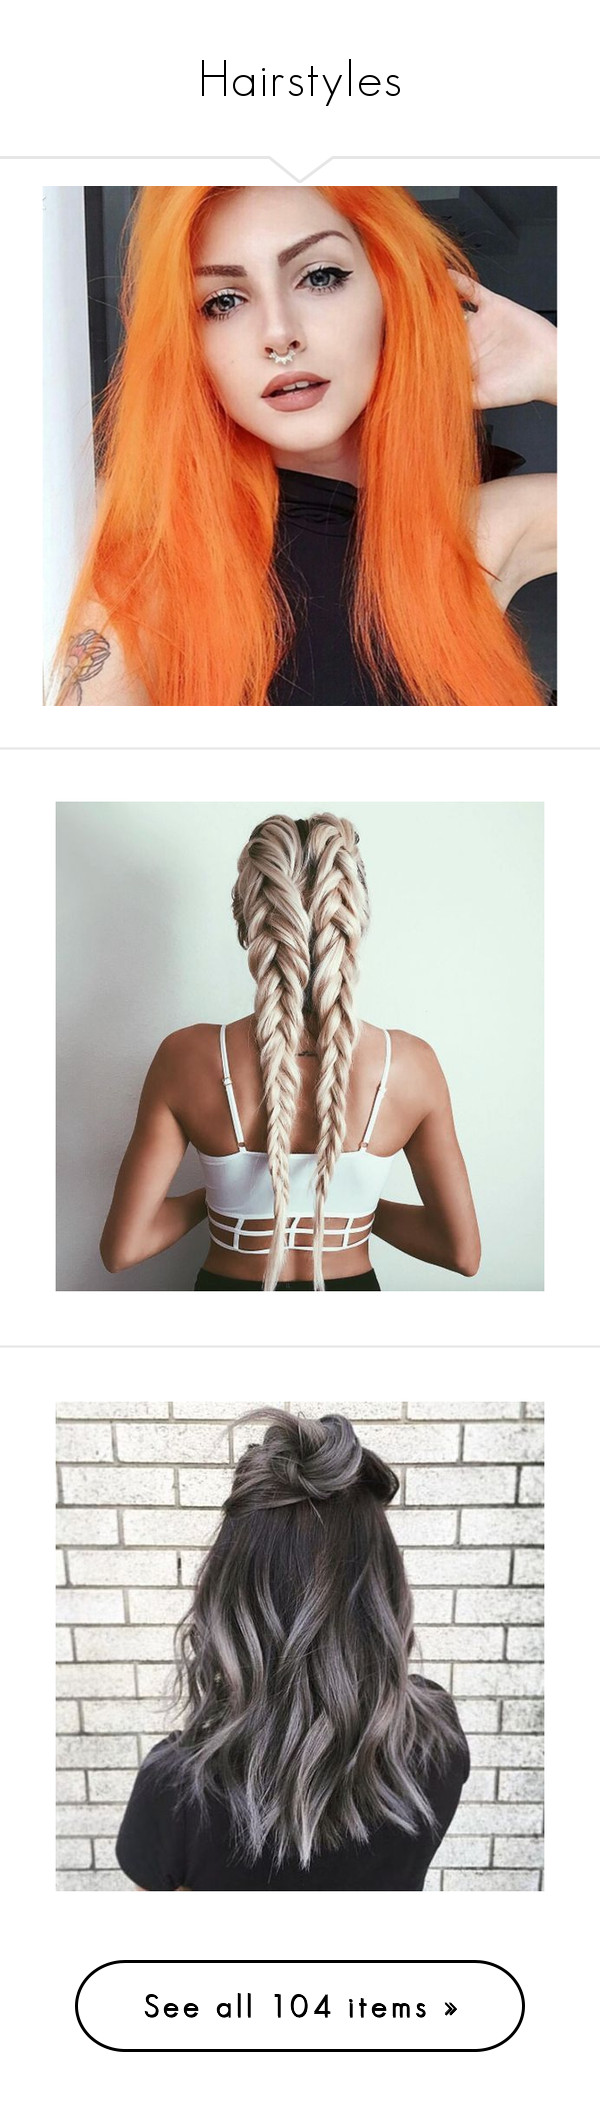 """""""Hairstyles"""" by slim-thick ❤ liked on Polyvore featuring hair, people, pictures, beauty products, haircare, hair styling tools, hairstyles, melanie martinez, faces and filler"""